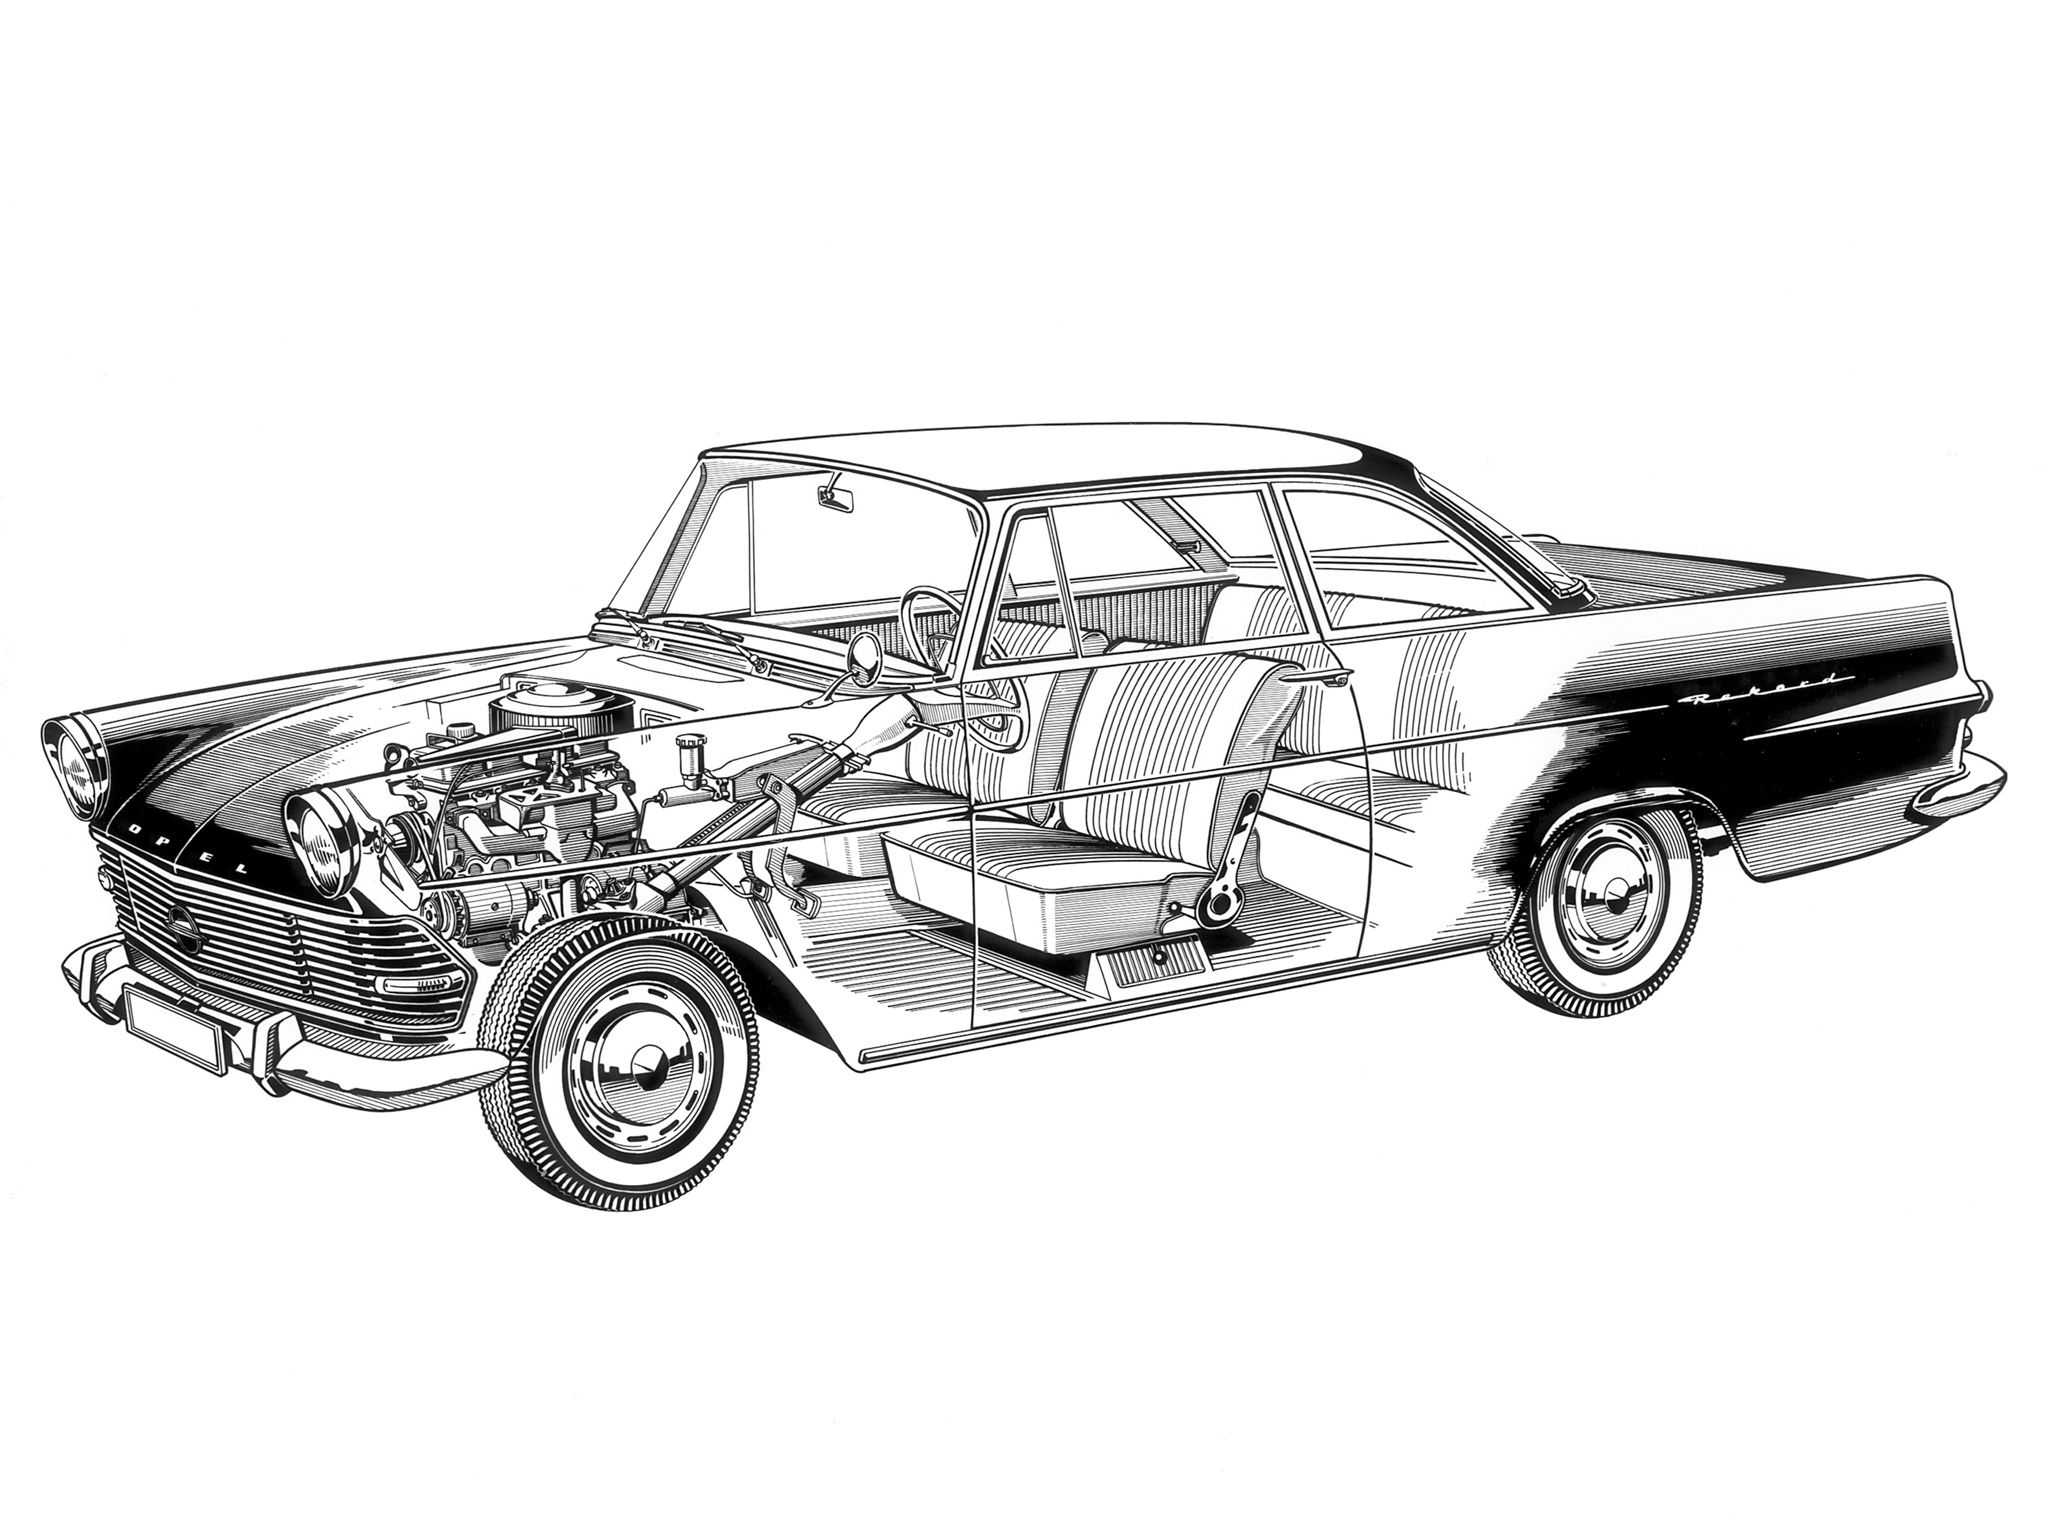 63 Opel Rekord Coupe P2